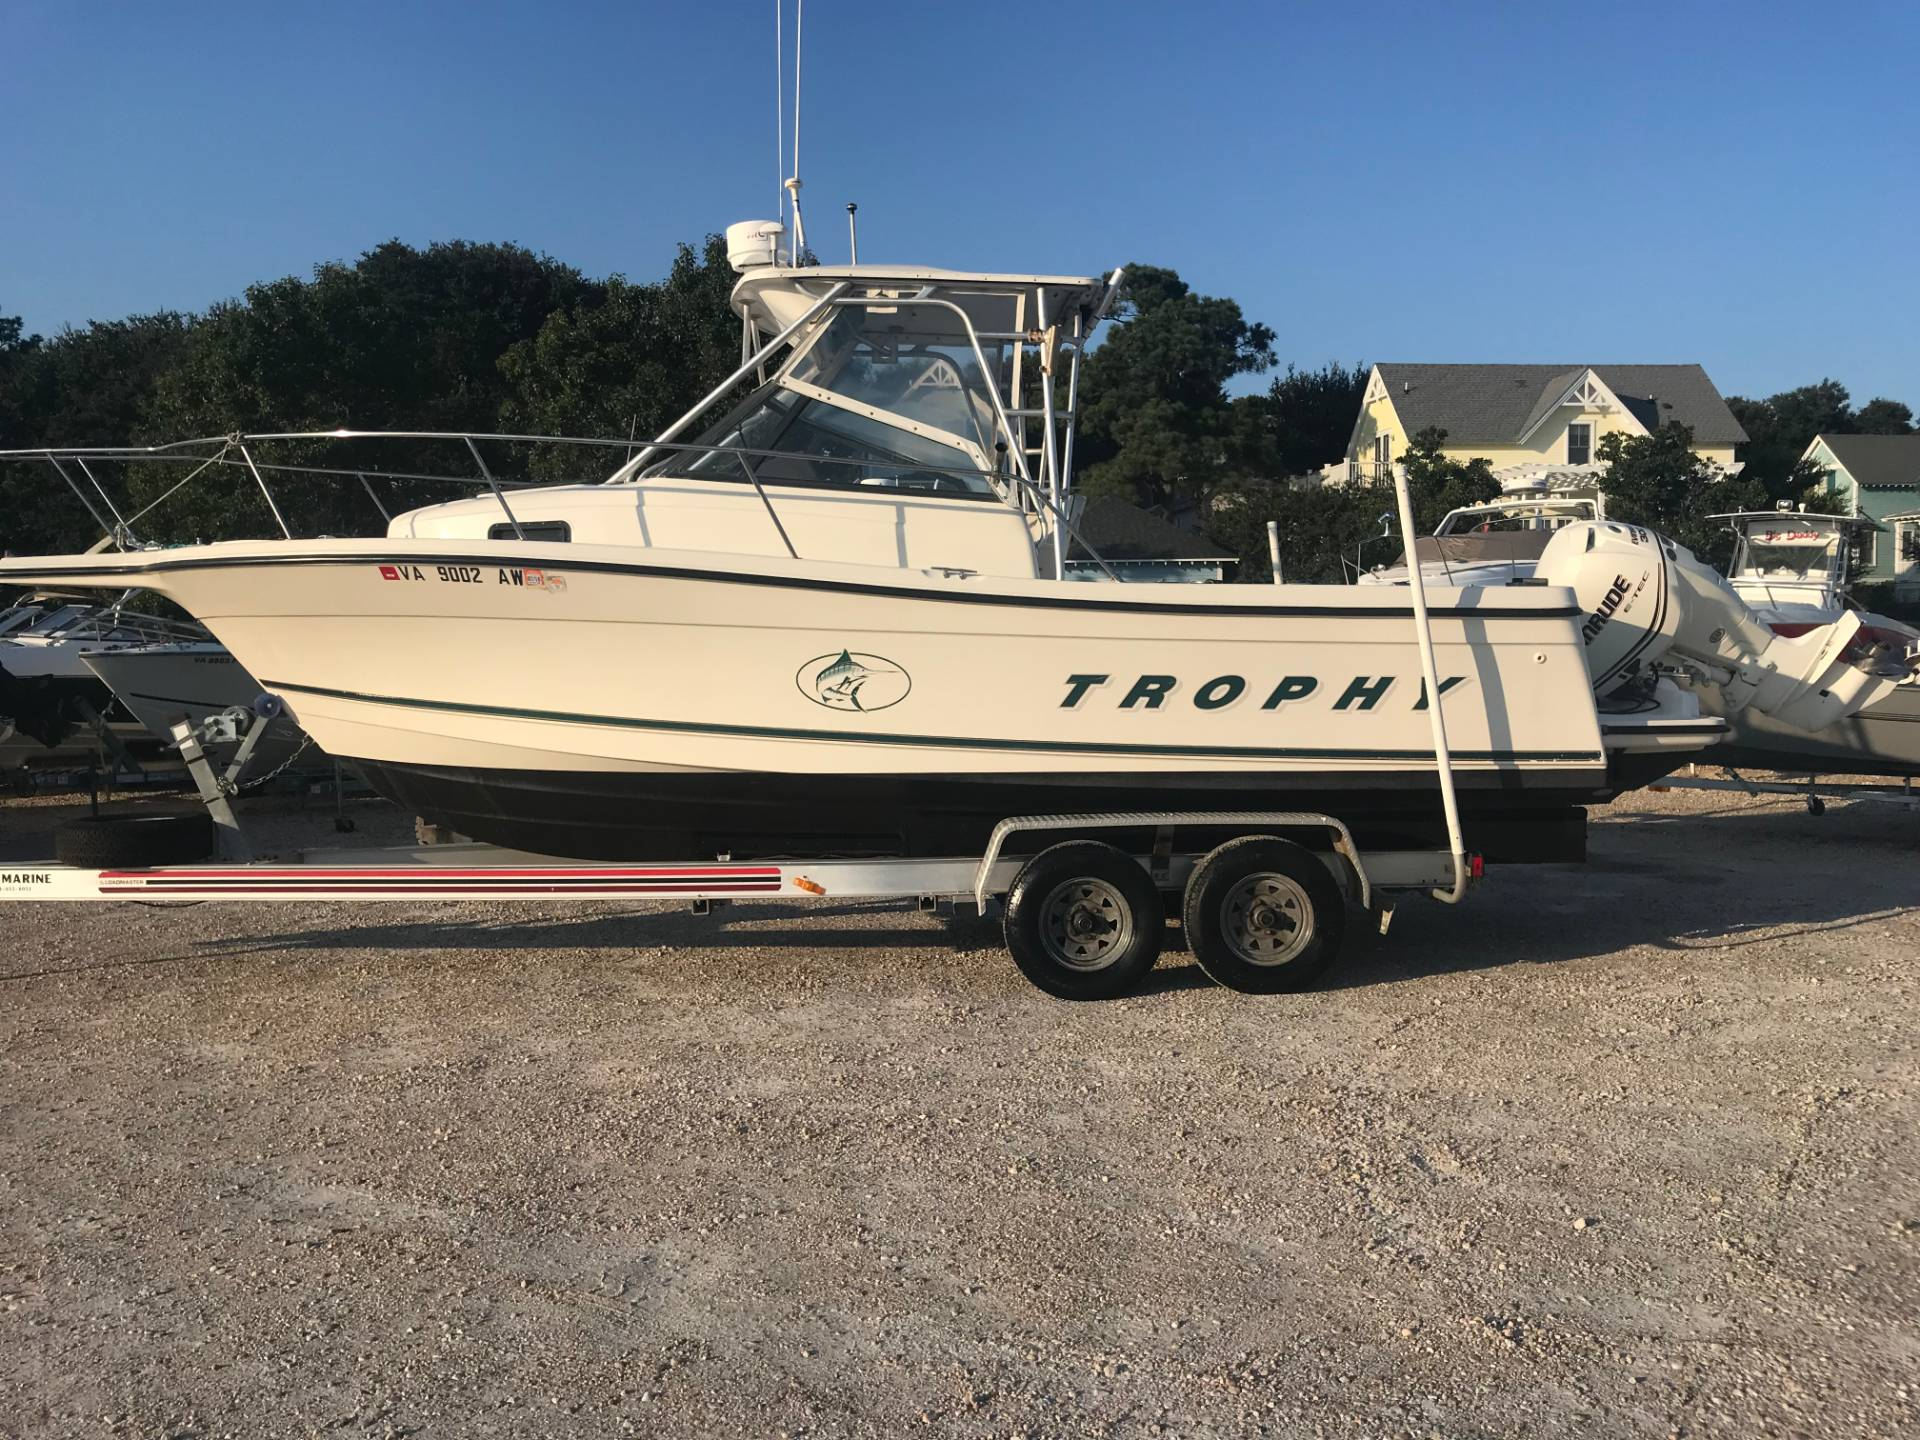 Bayliner Trophy boats for sale - Boat Trader